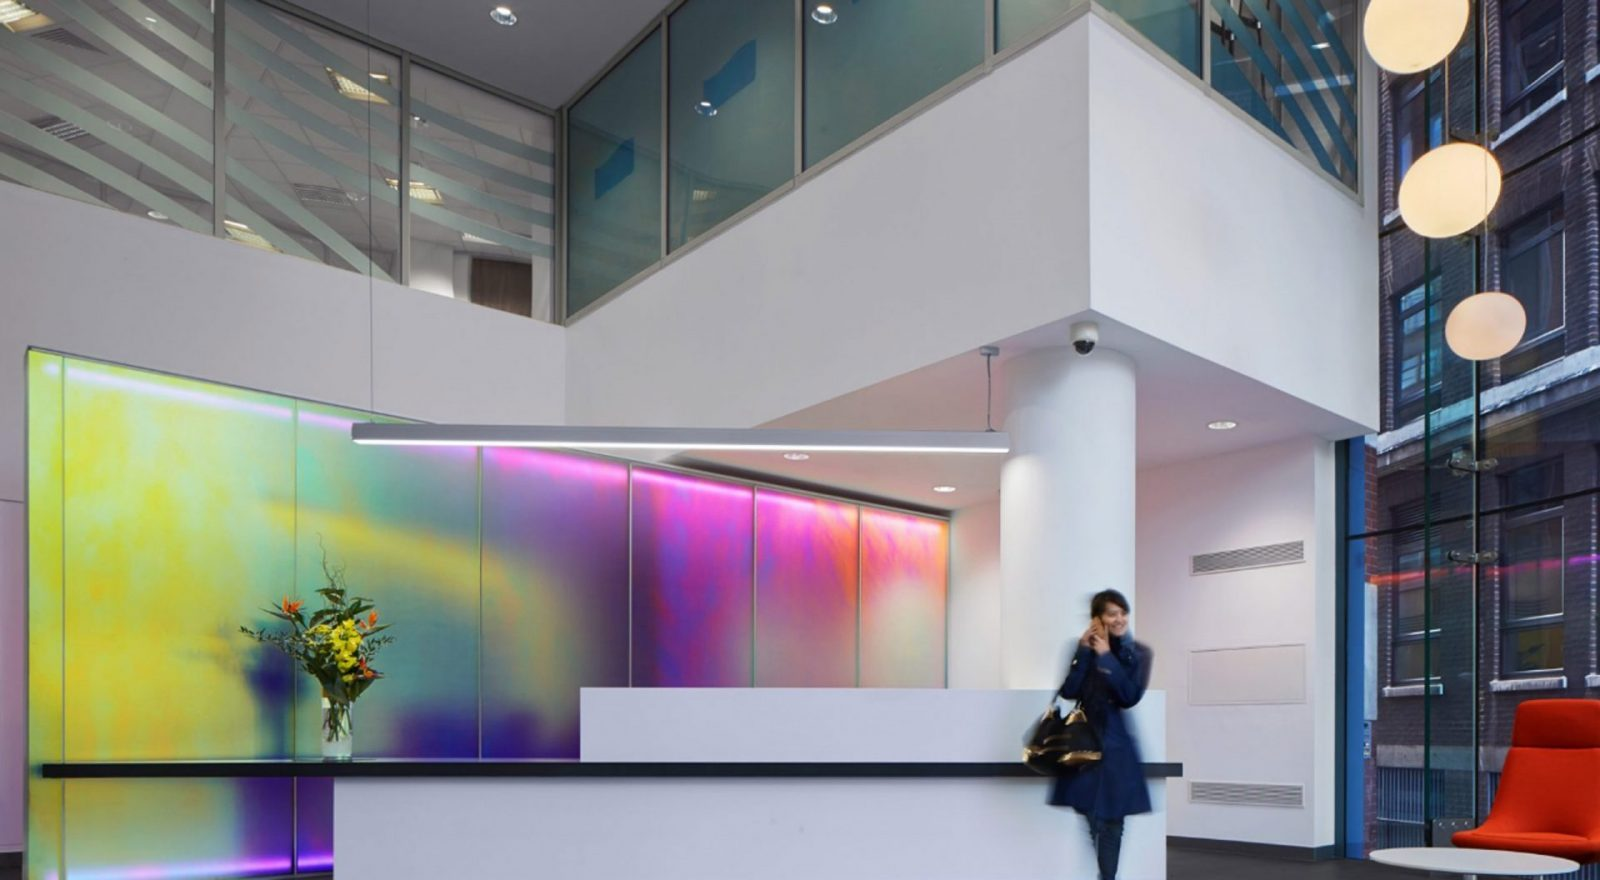 st phillips point birmingham offices refurb interiors architects jersey architecture6